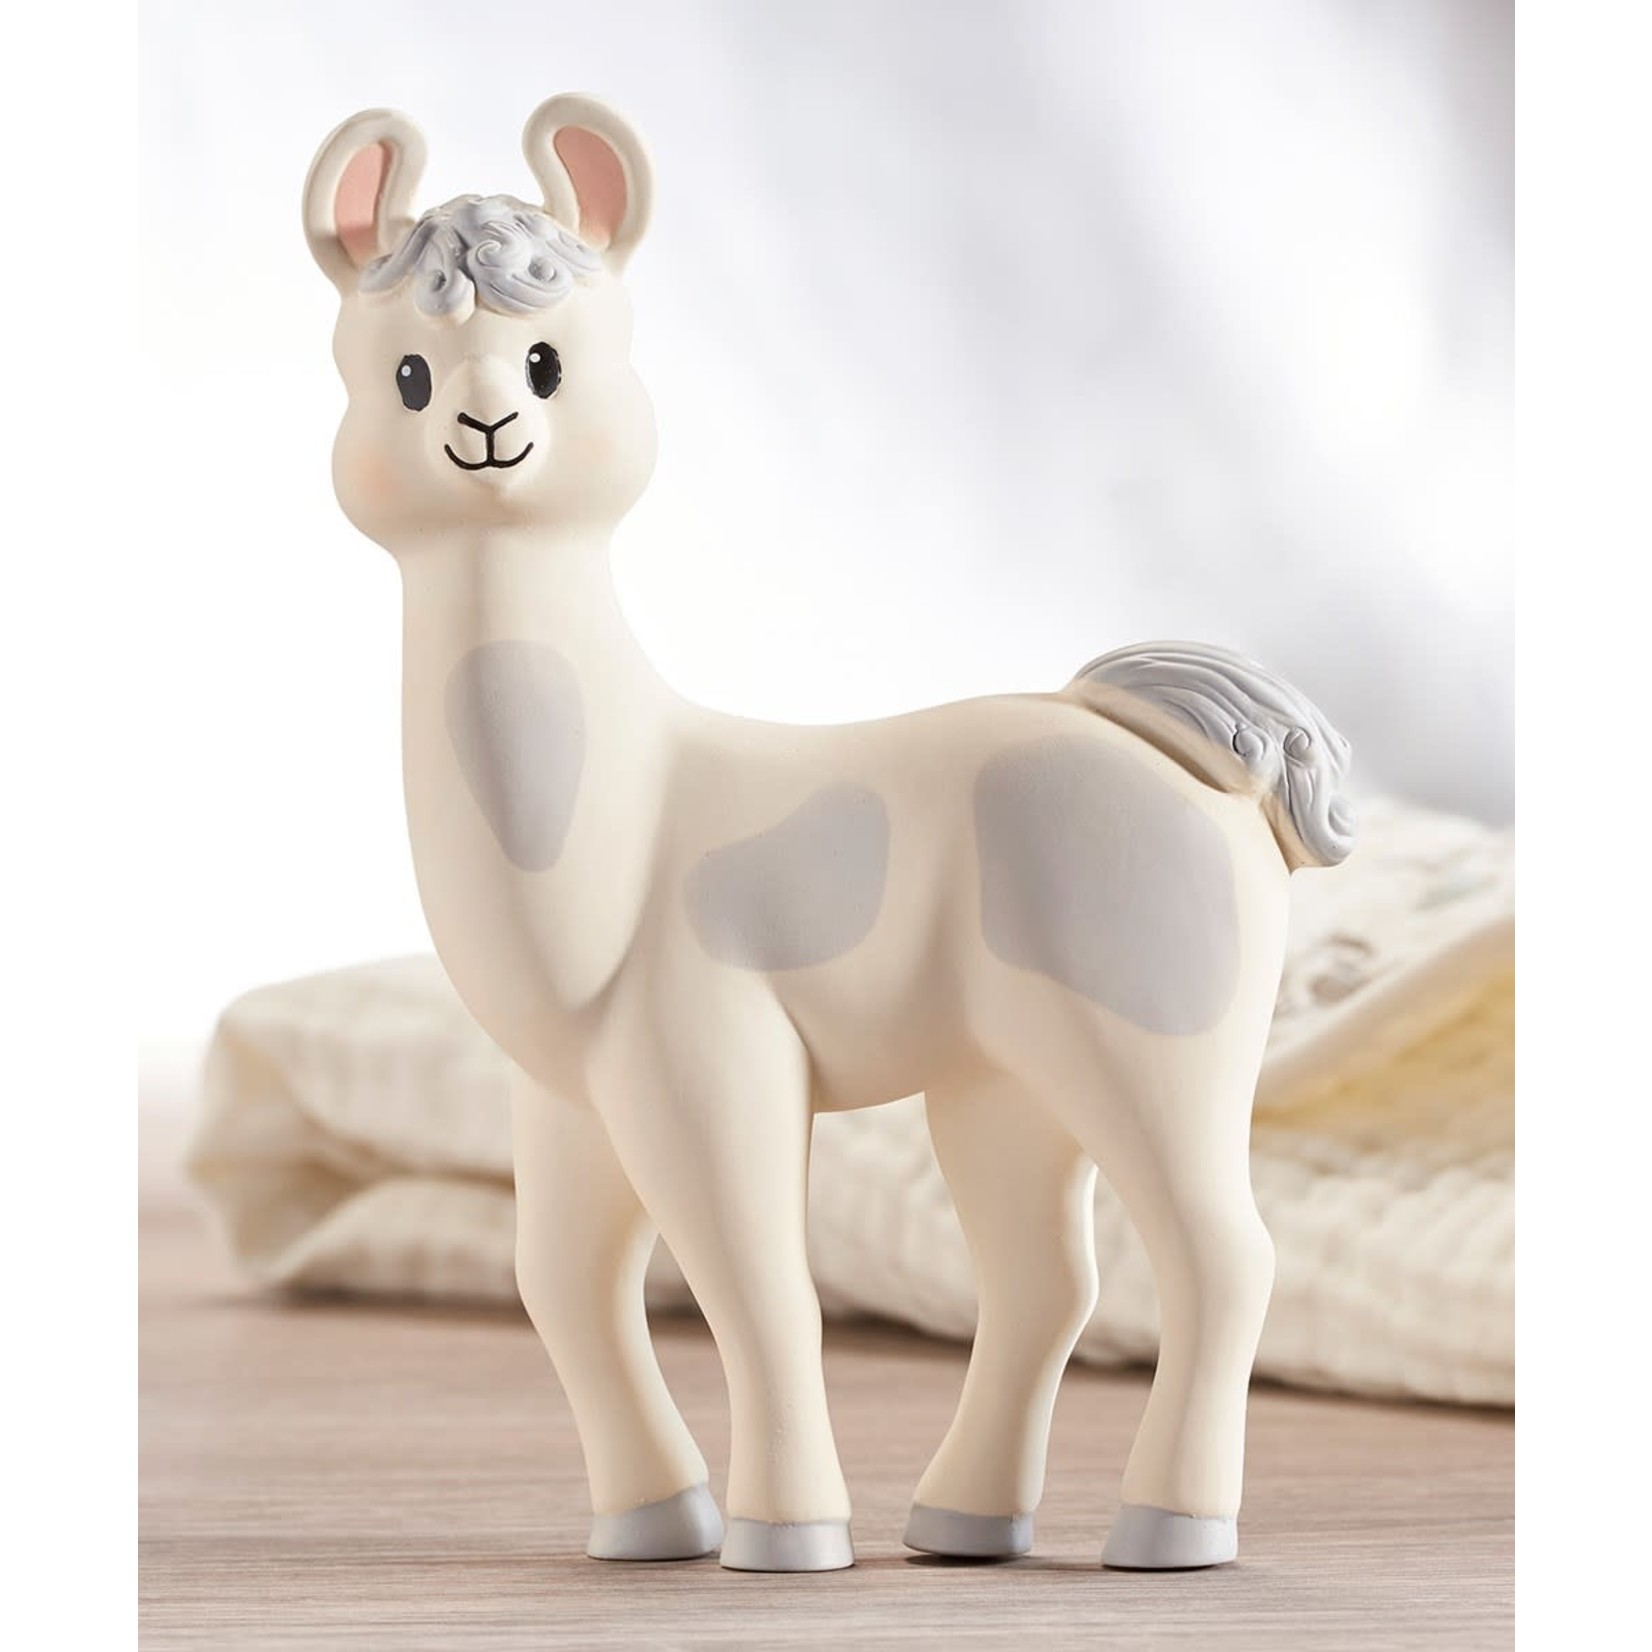 Lil' Llama Teething Toy - Natural Rubber